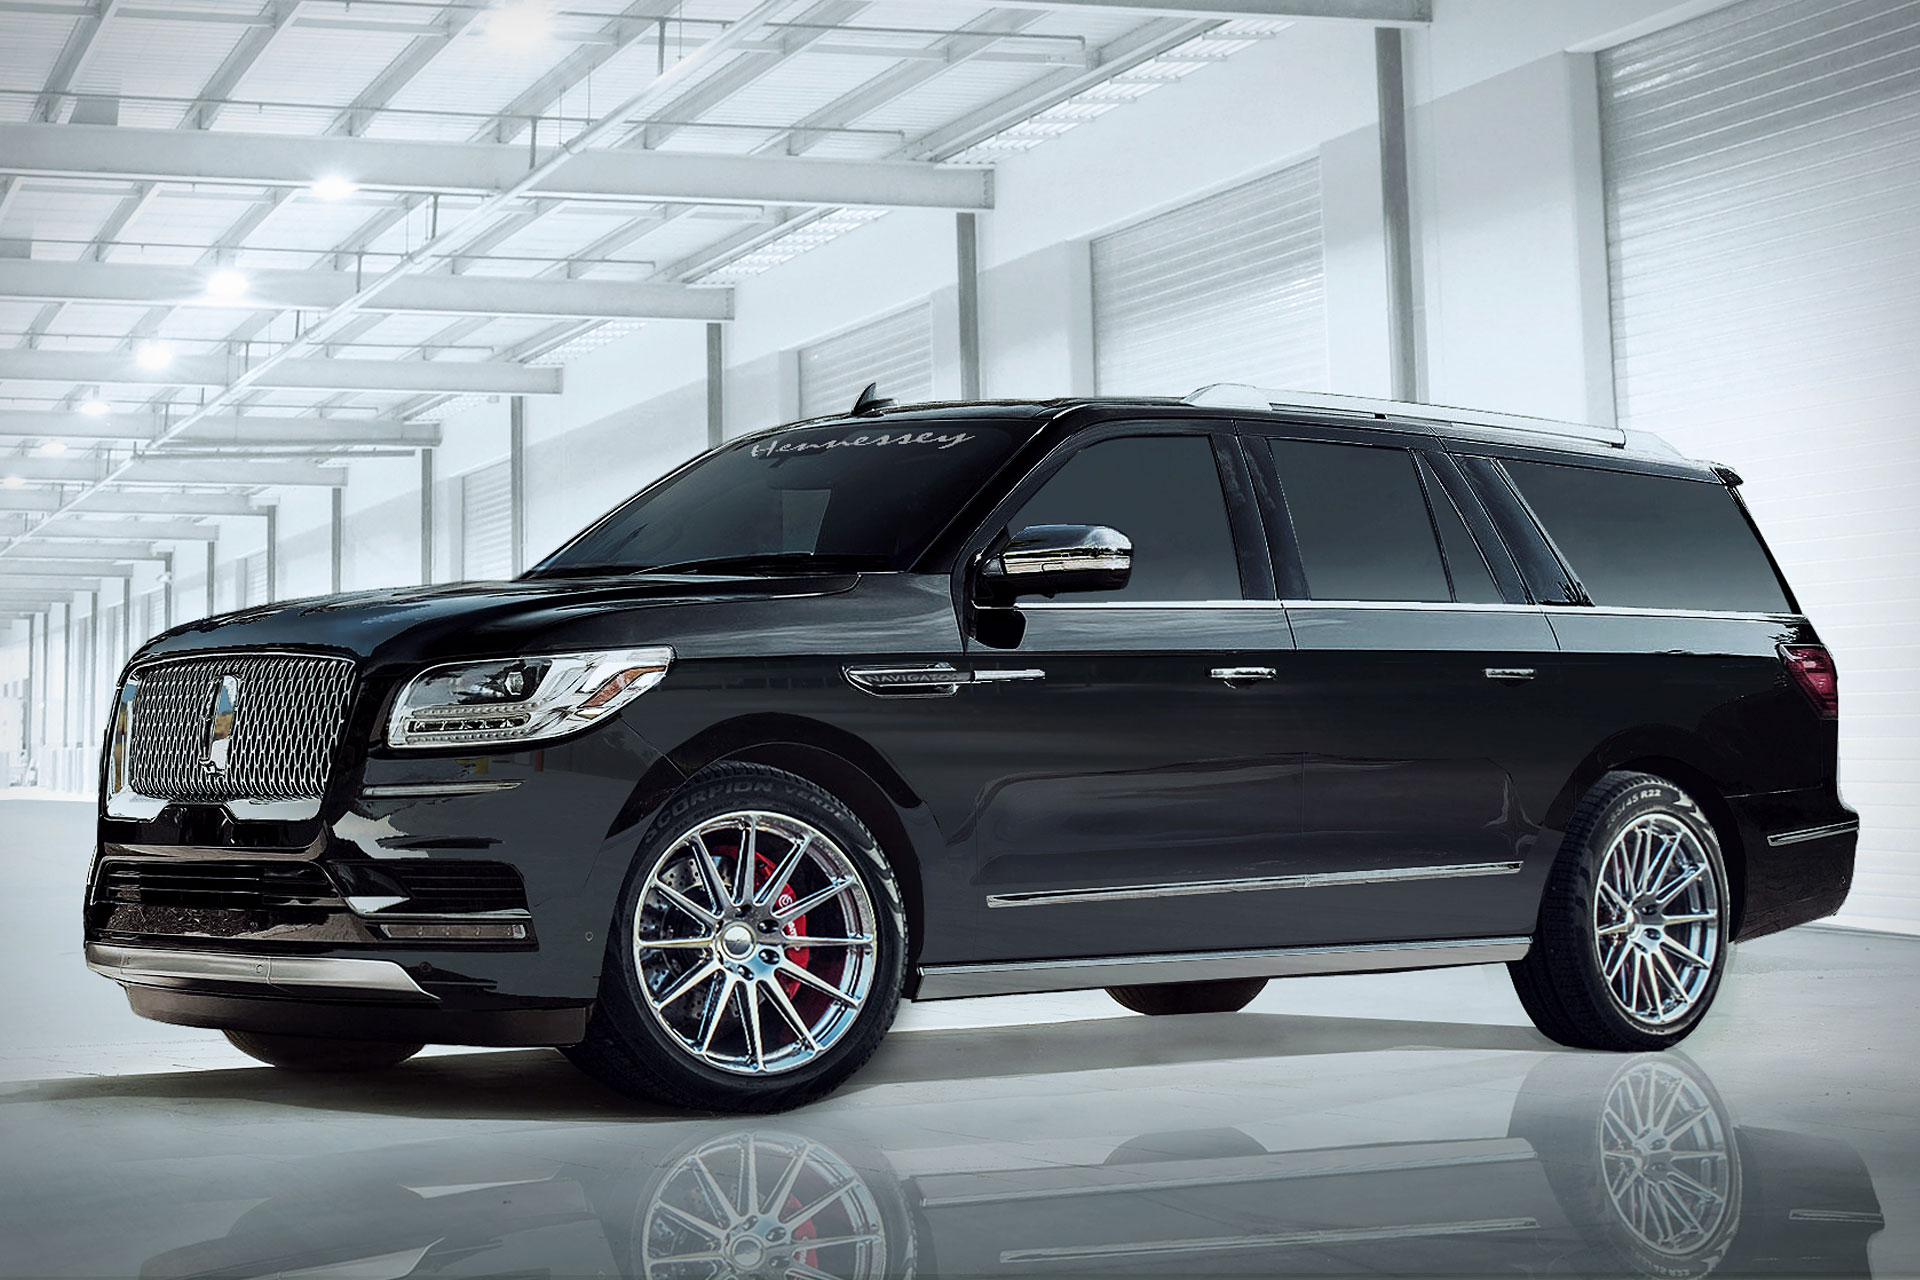 2018 Hennessey Lincoln Navigator | Uncrate